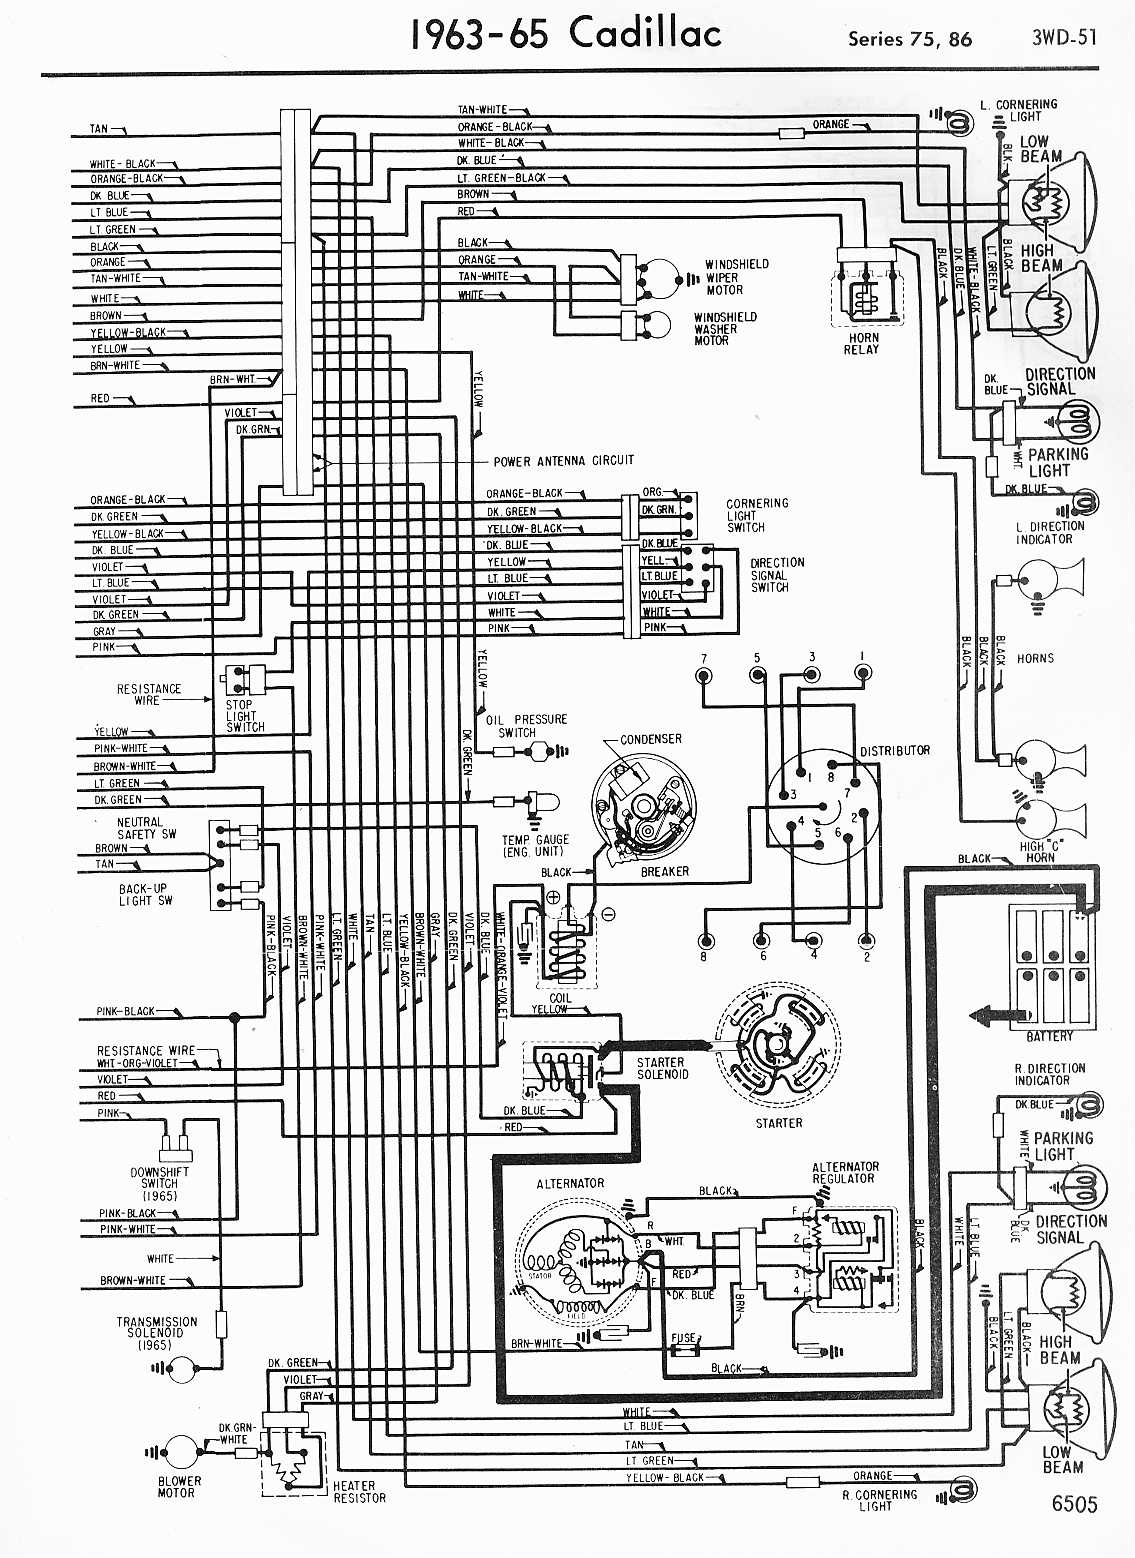 Comet Wiring Harness Auto Electrical Diagram 1996 Dodge Ram 2500 Trailer 1964 Cadillac Fleetwood Passenger Seat All Quit Working